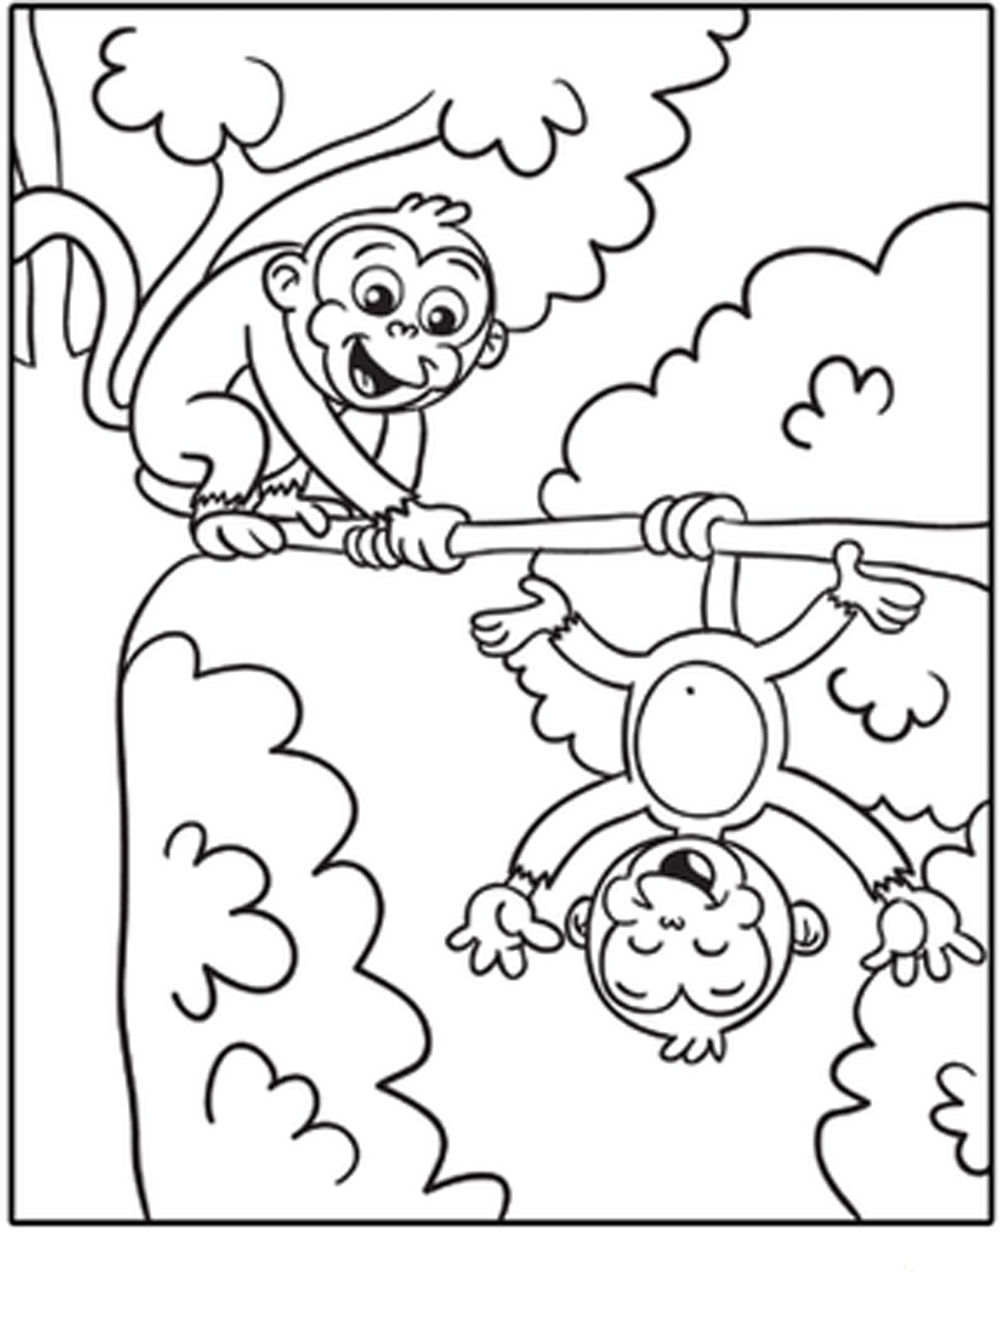 1000x1322 Free Printable Monkey Coloring Pages